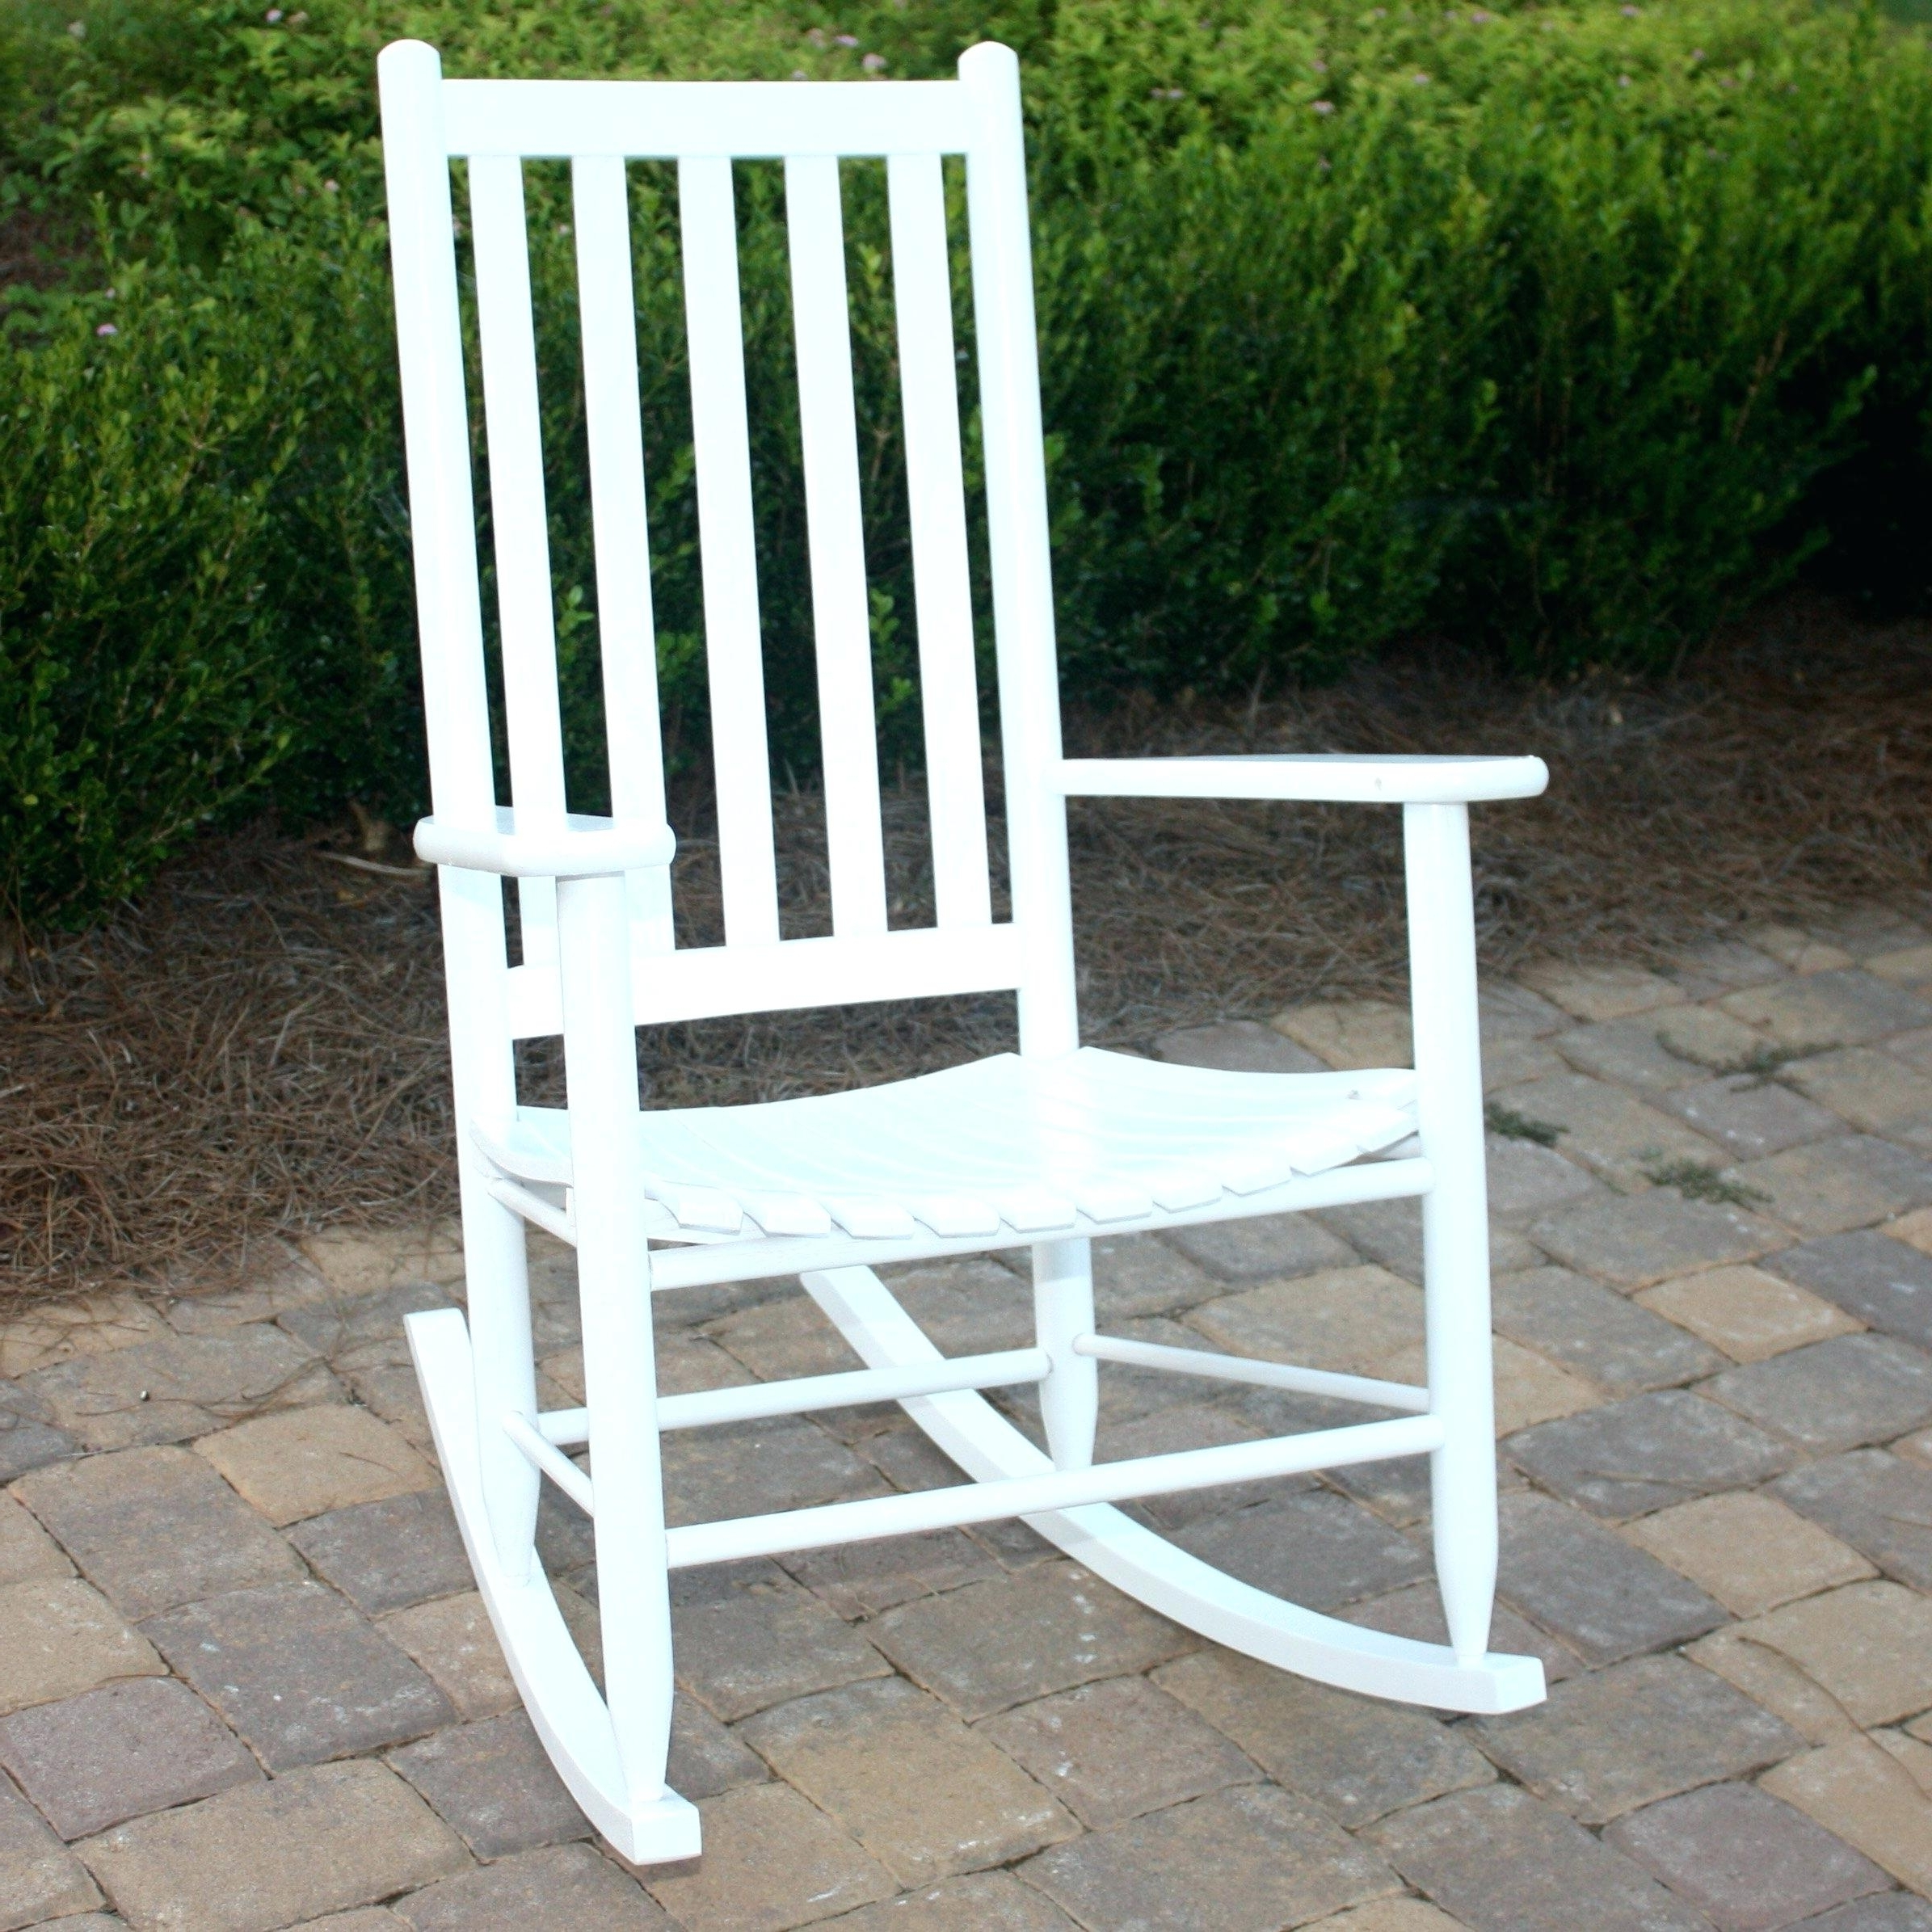 Rocking Chairs For Outside With 2018 Patio Rocking Chairs Outside Chair Sets White Wicker Canada Resin (View 12 of 15)